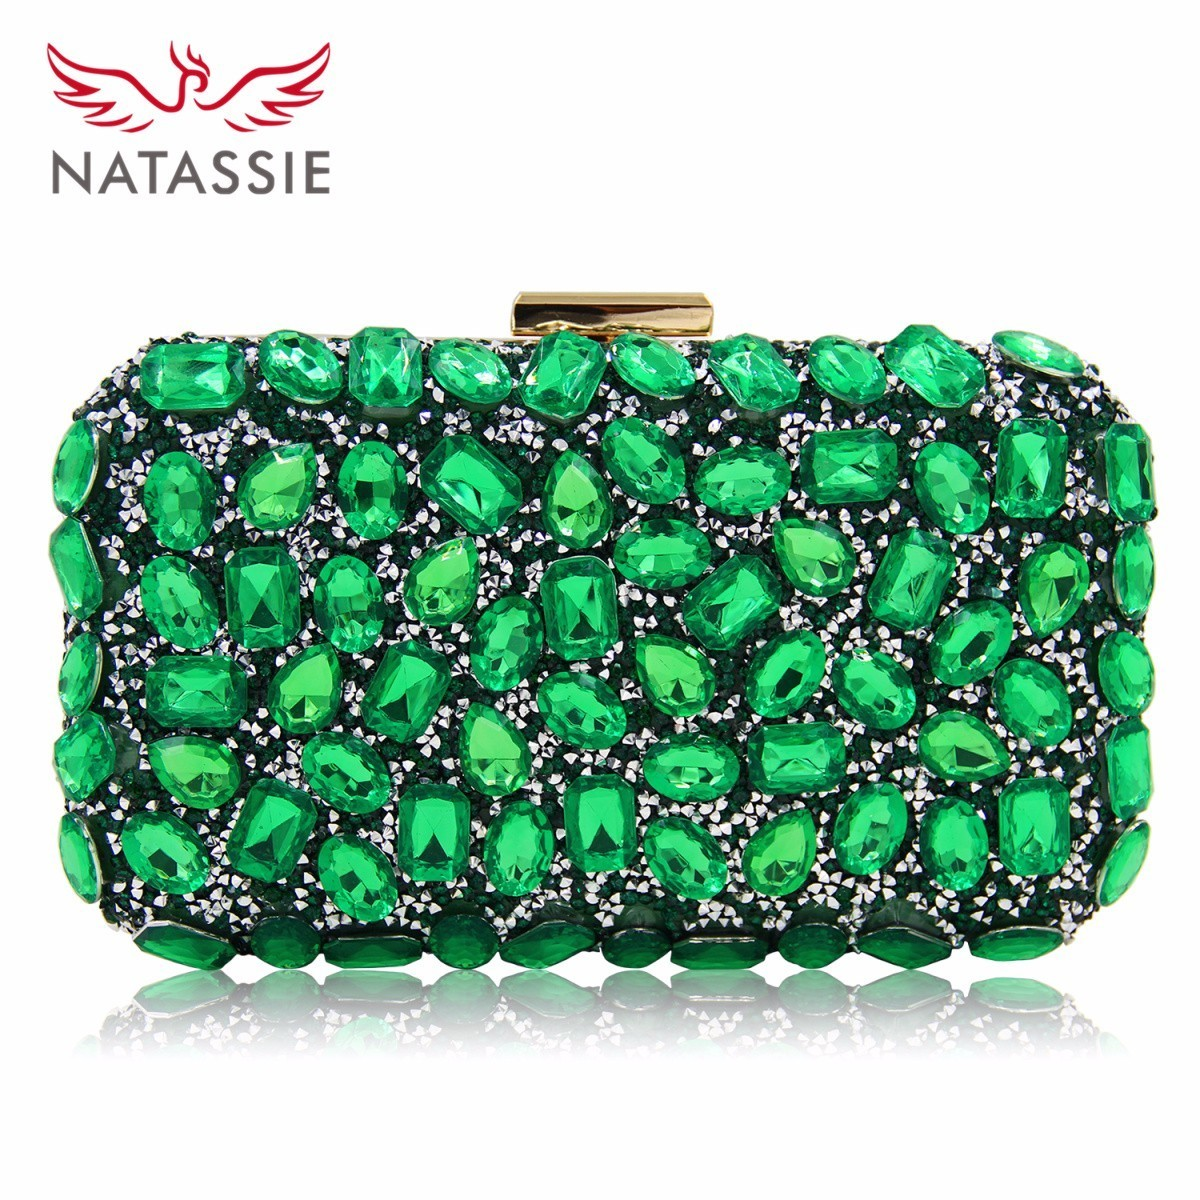 Natassie Women Clutch Bag Ladies Evening Bags Purses Female Gold Clutch Purses Wedding Clutches